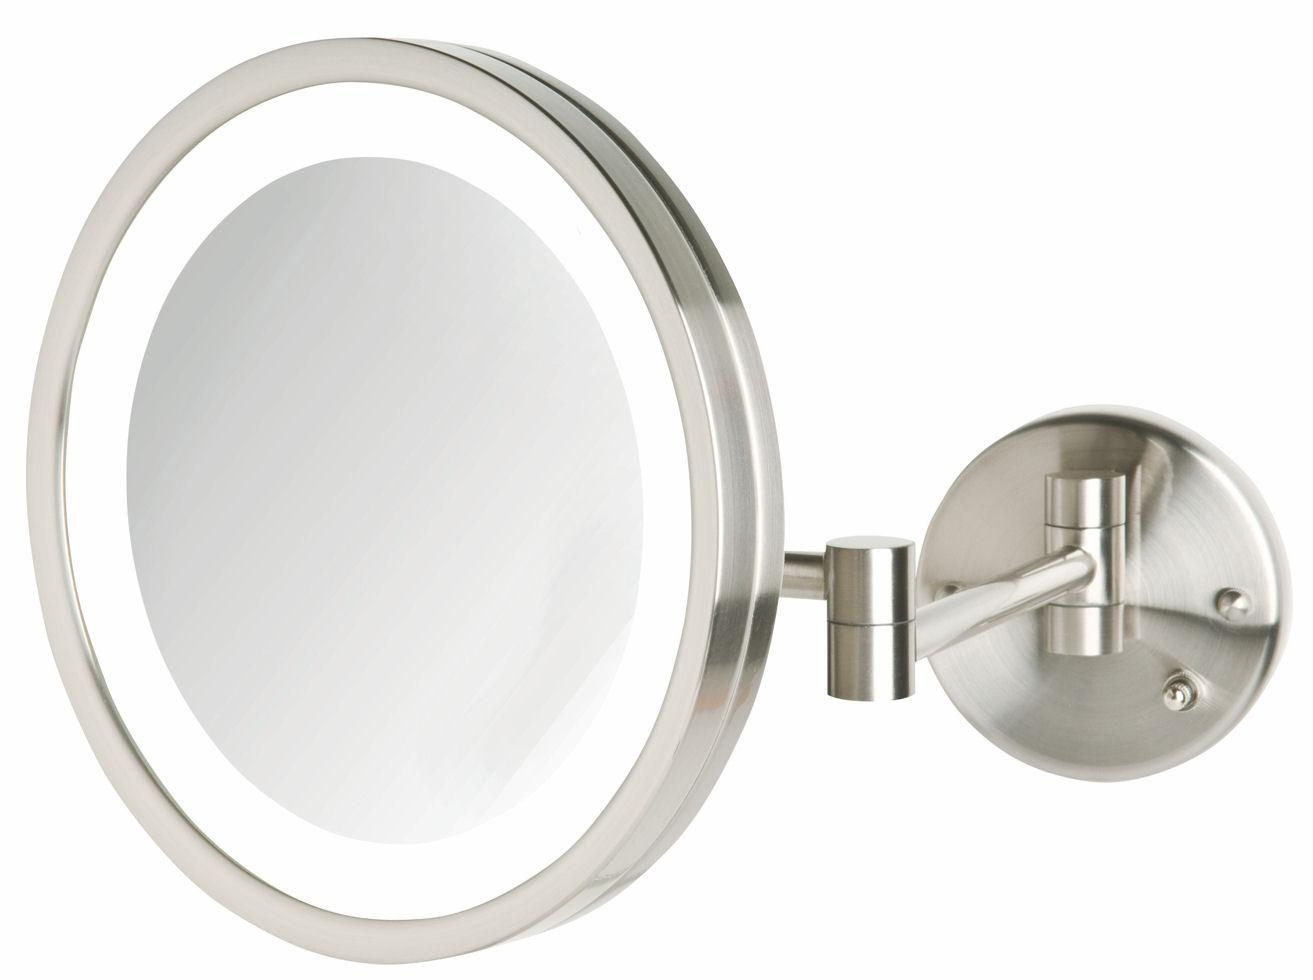 Interesting Decoration Lighted Vanity Mirror Wall Mount Nice Ideas For Wall Mounted Lighted Makeup Mirrors (Image 6 of 20)